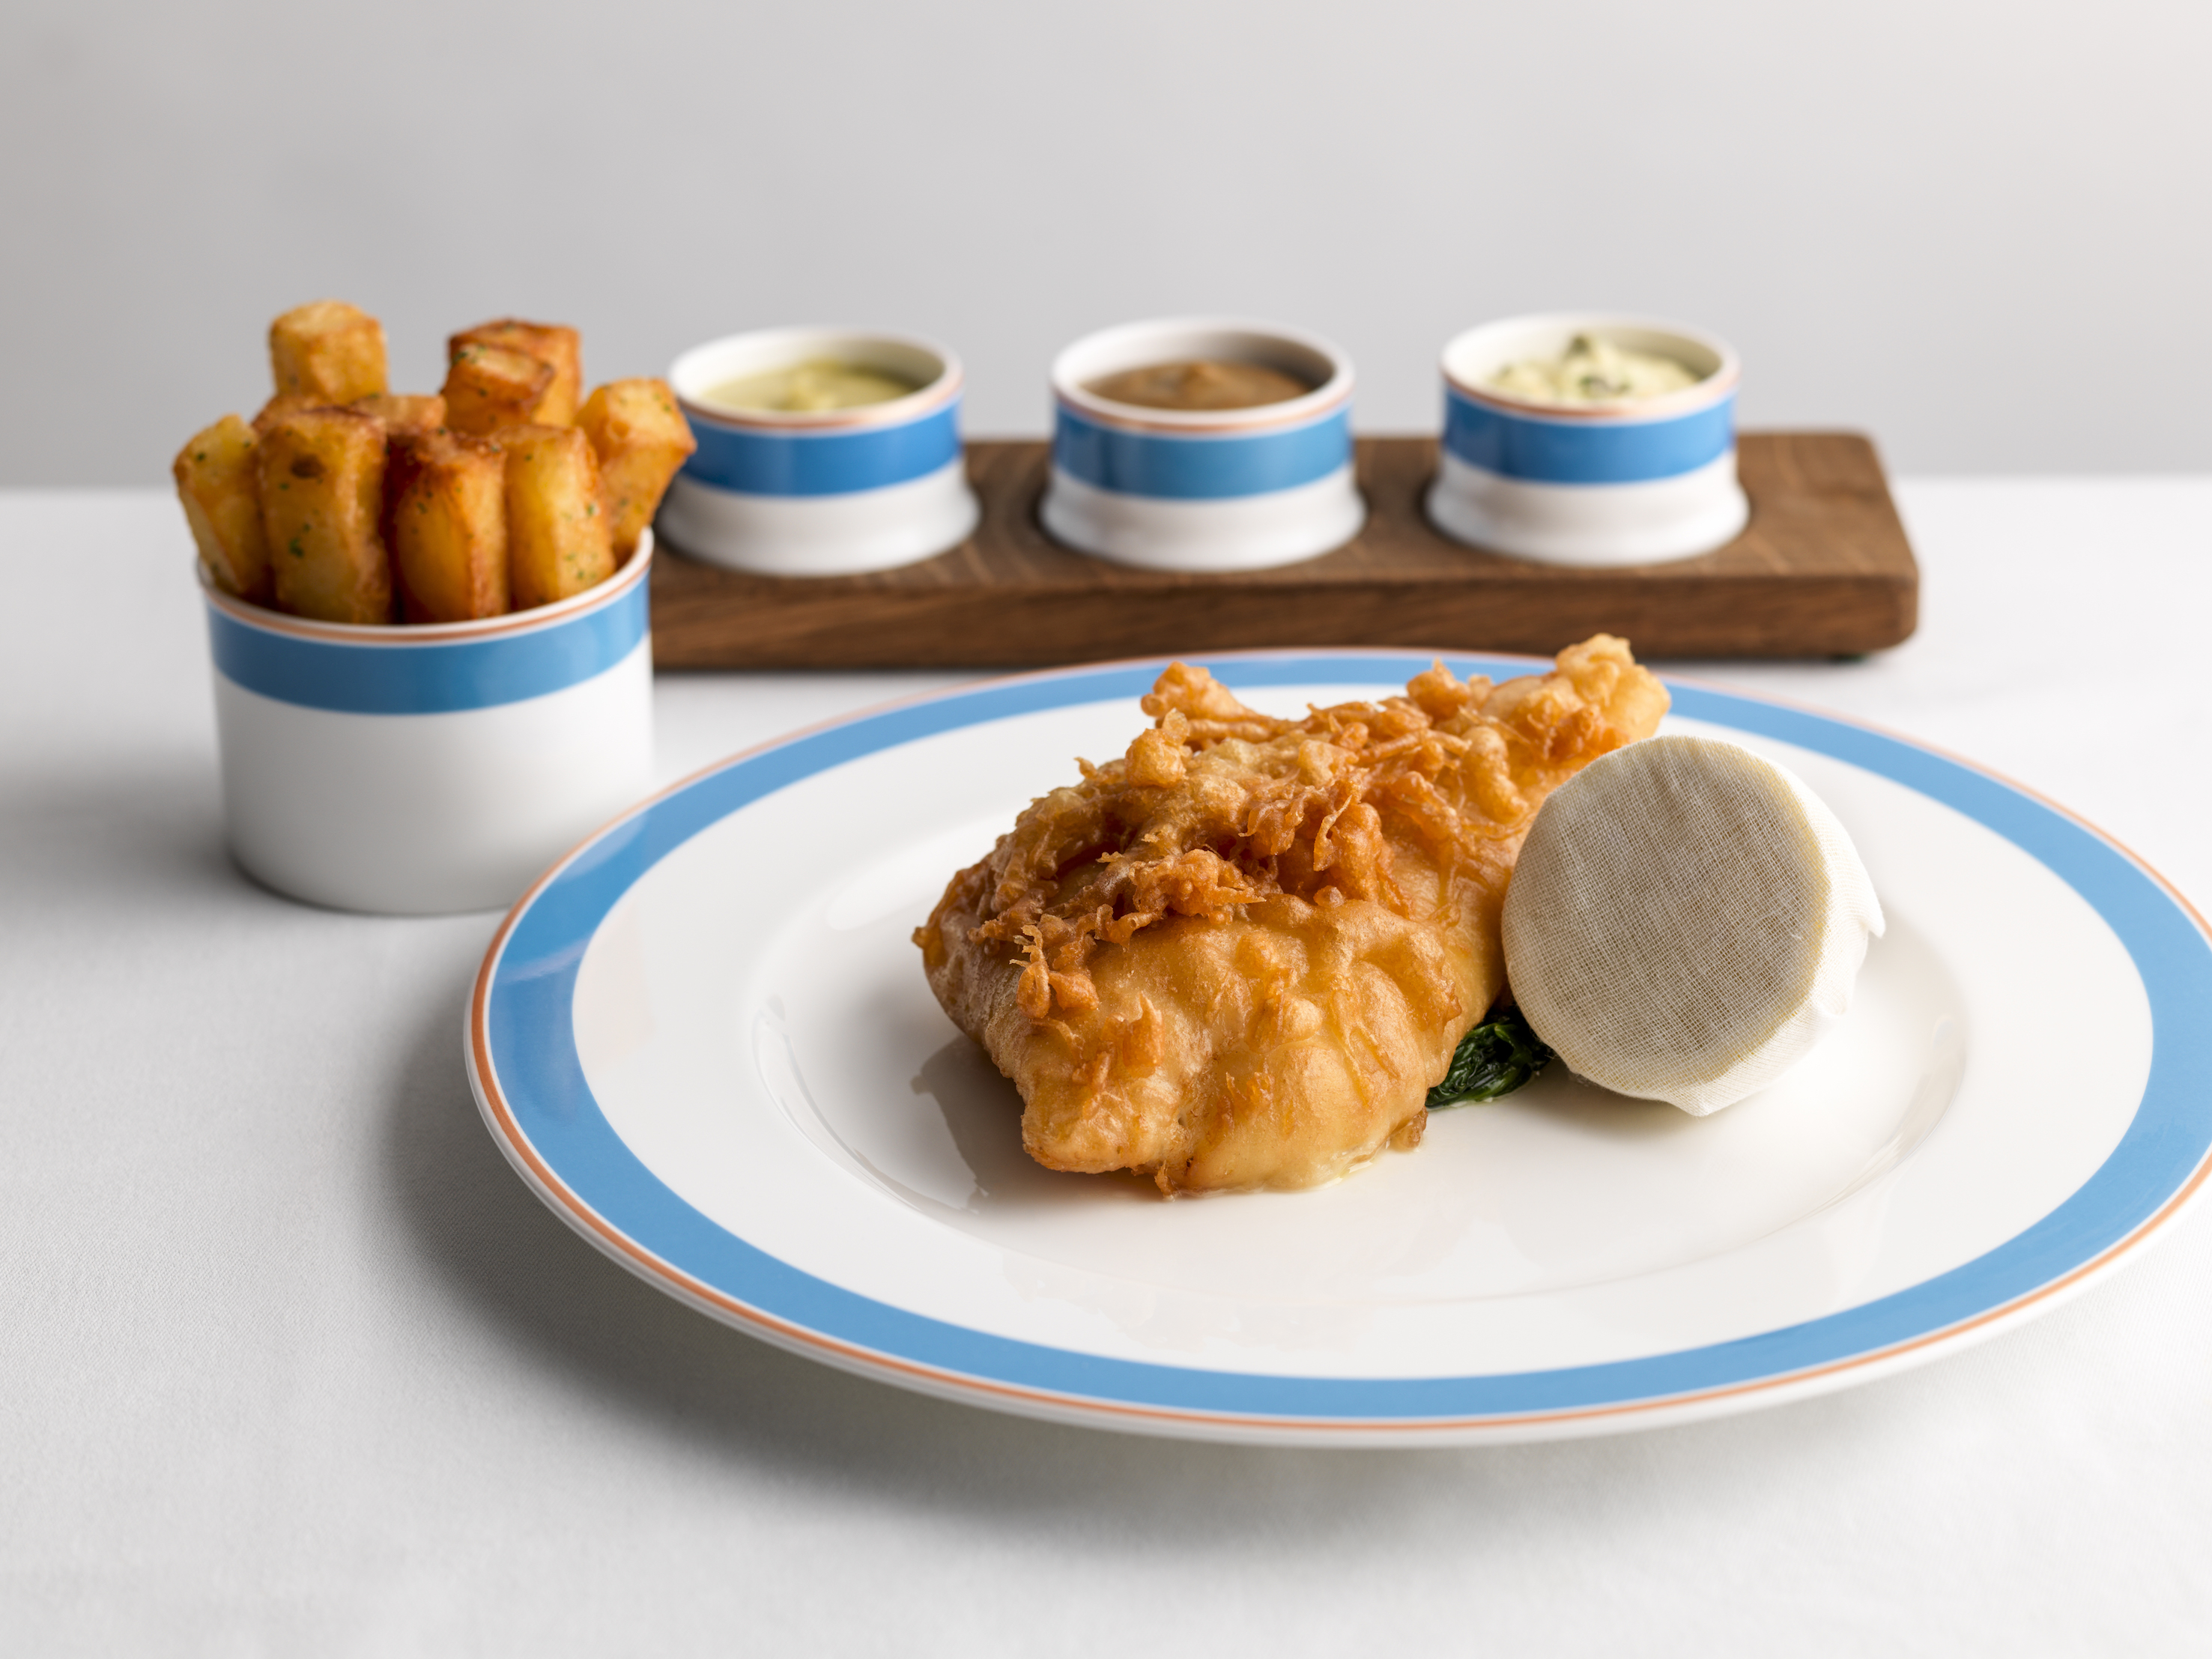 4 Celebrity Chef London Restaurants You Must Try Now - Tom Kerridge and Kerridge's Bar & Grill: Fish & Chips (Photo Credit: Cristian Barnett)